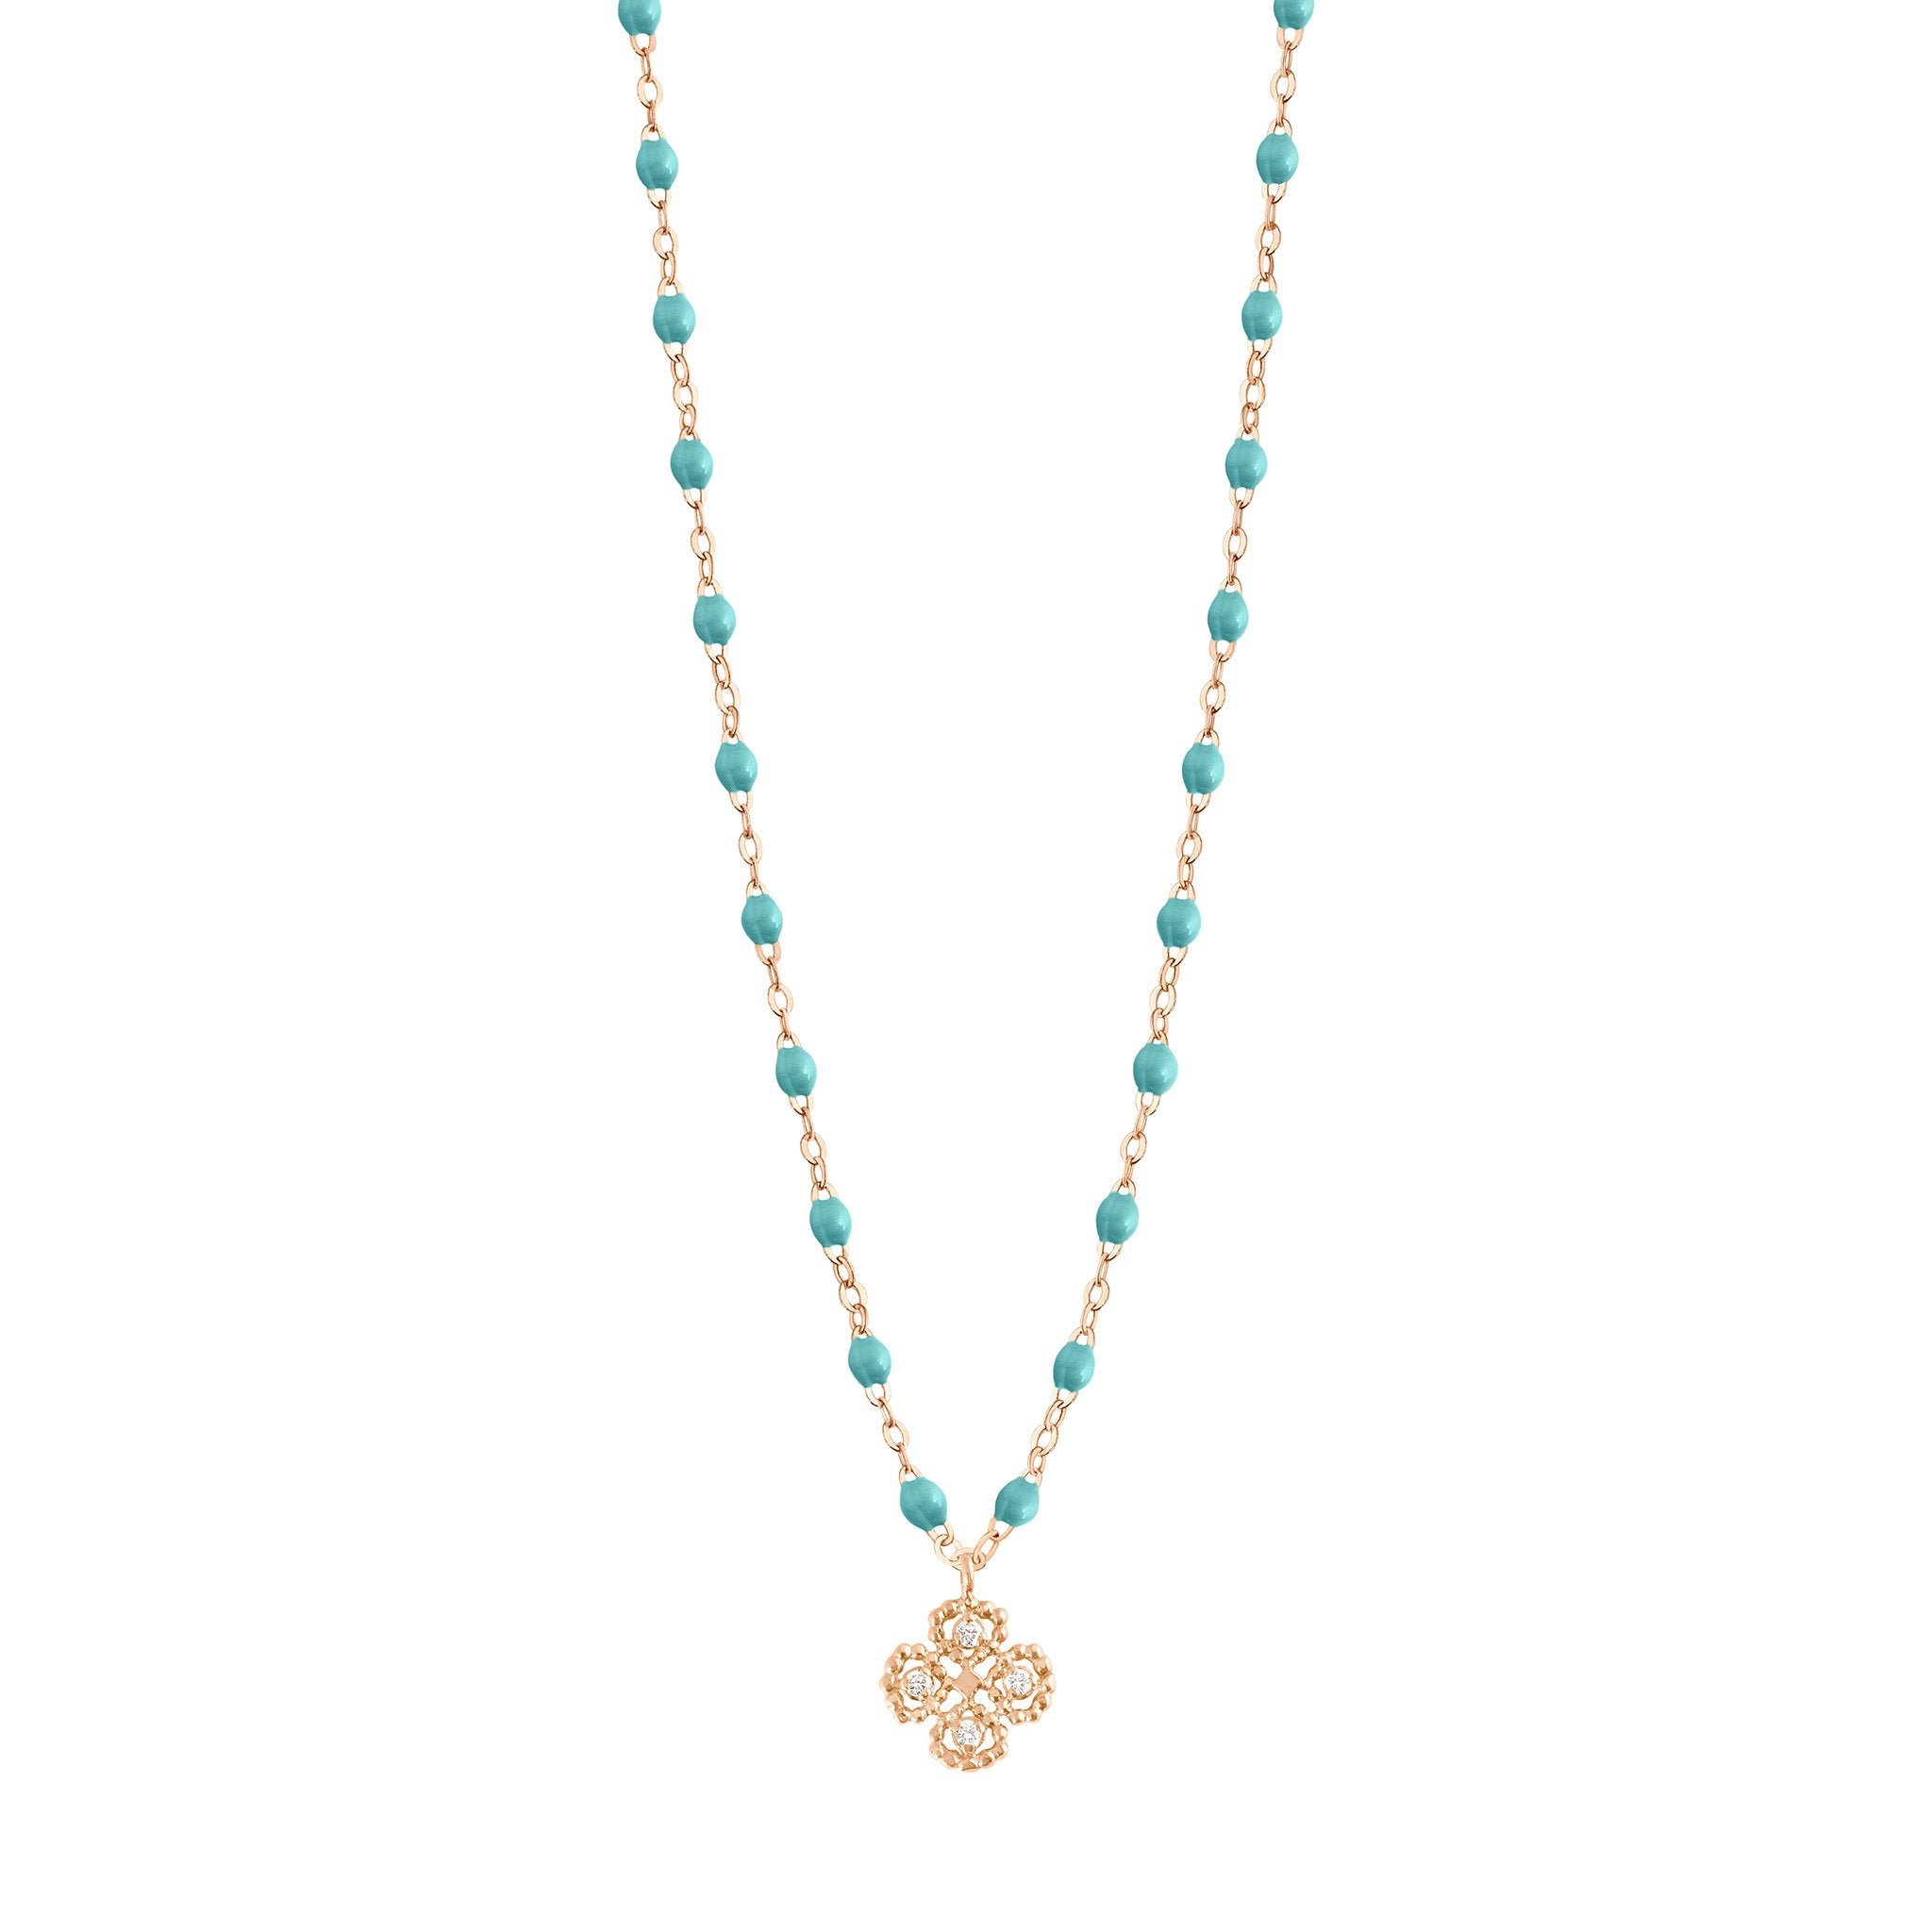 Gigi Clozeau - Lucky Clover Classic Gigi Turquoise Green diamond necklace, Rose Gold, 16.5""